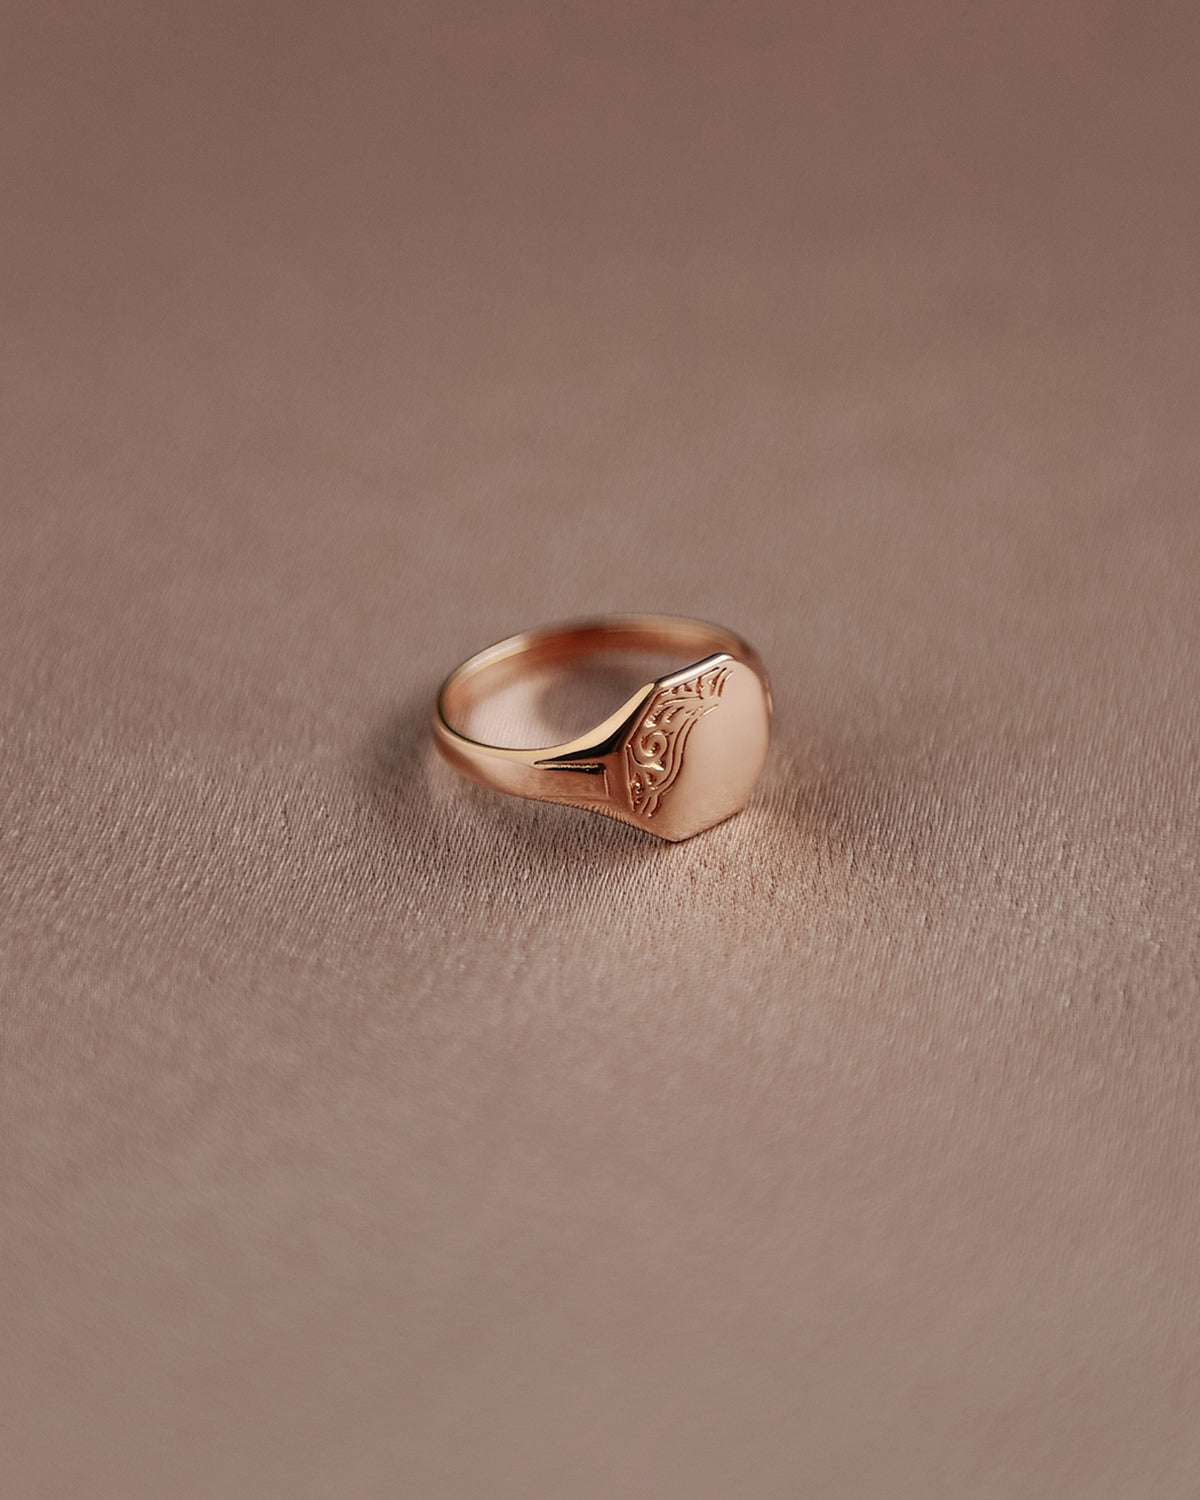 Image of George Sterling Silver Signet Pinky Ring - Gold Plated